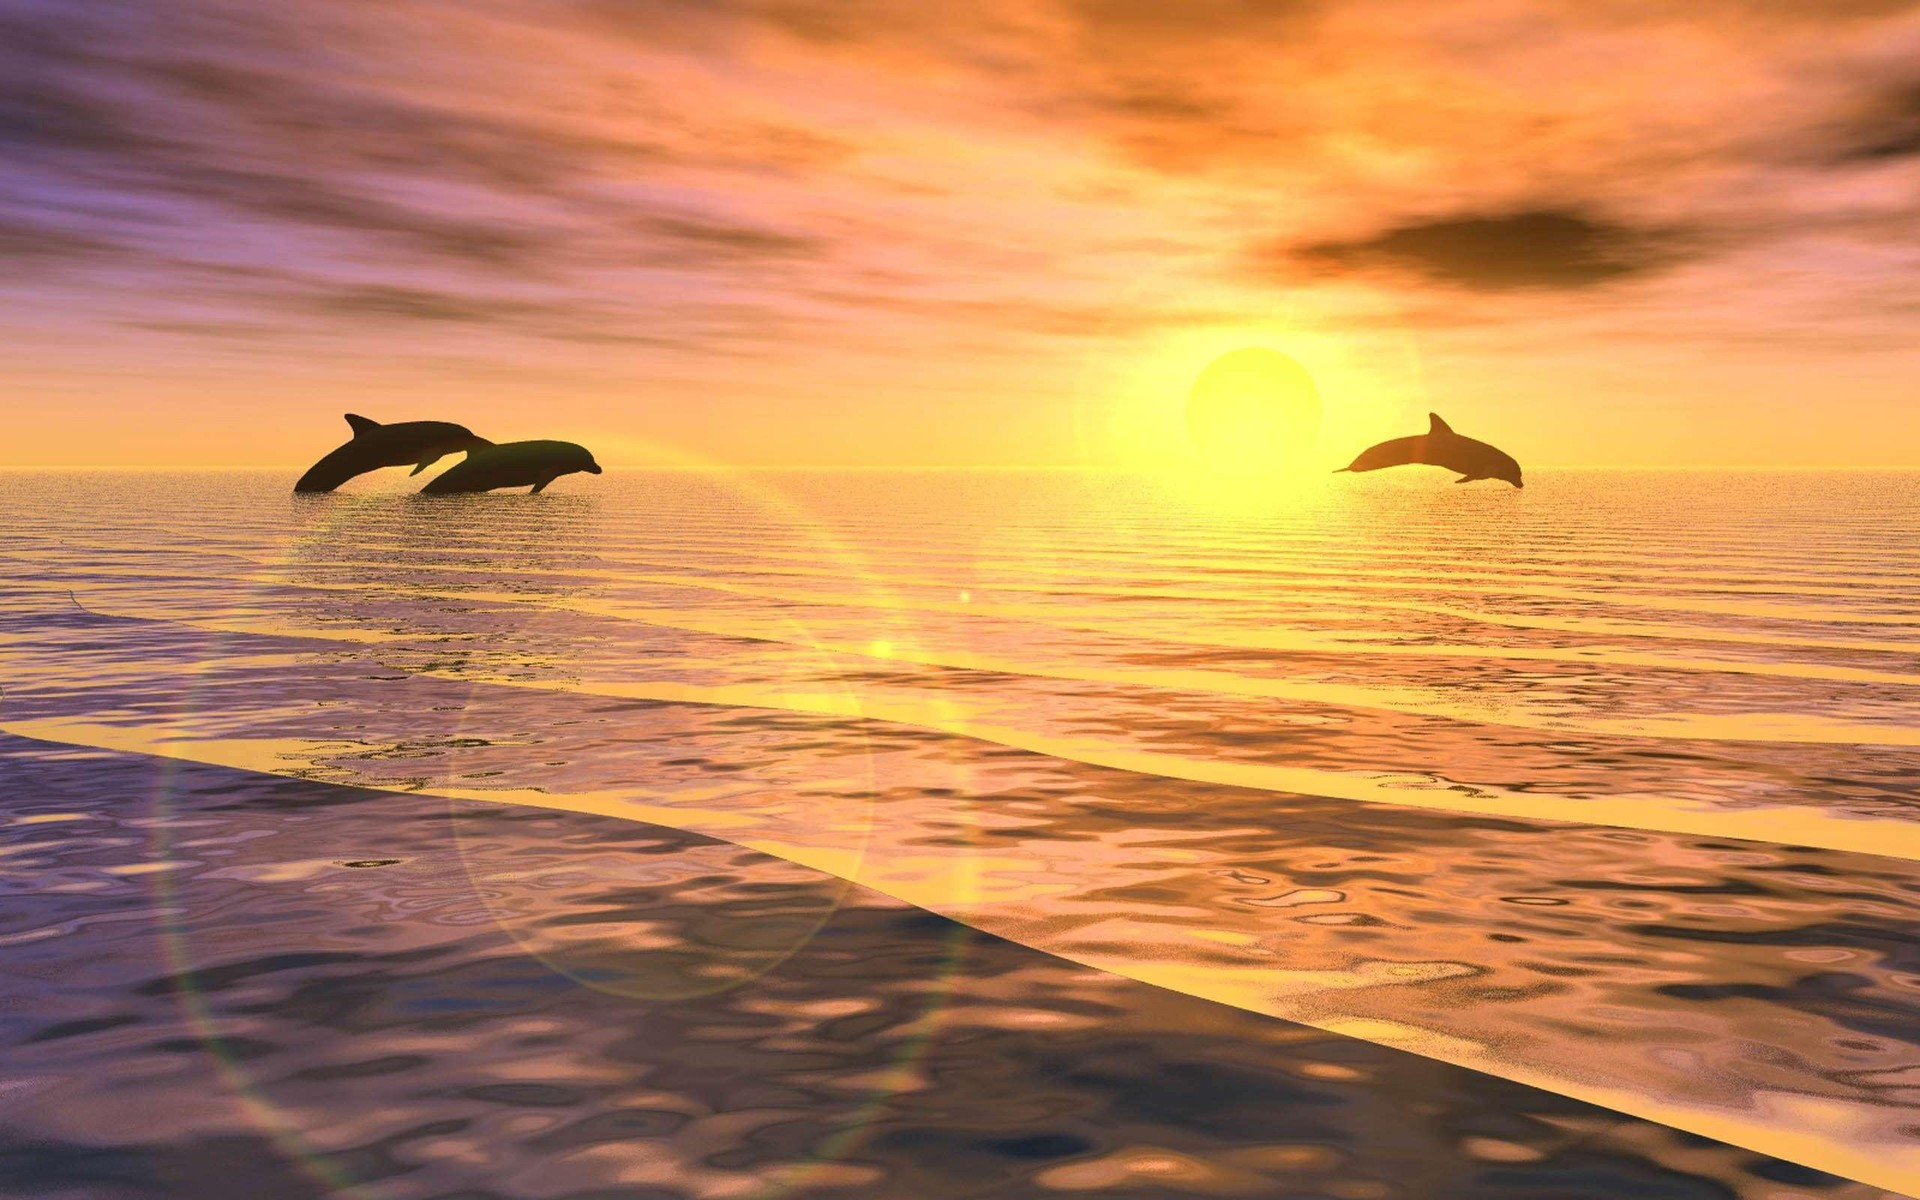 https://cdn.allwallpaper.in/wallpapers/1920x1200/2798/jumping-dolphins-at-sunset-1920x1200-wallpaper.jpg Dolphins